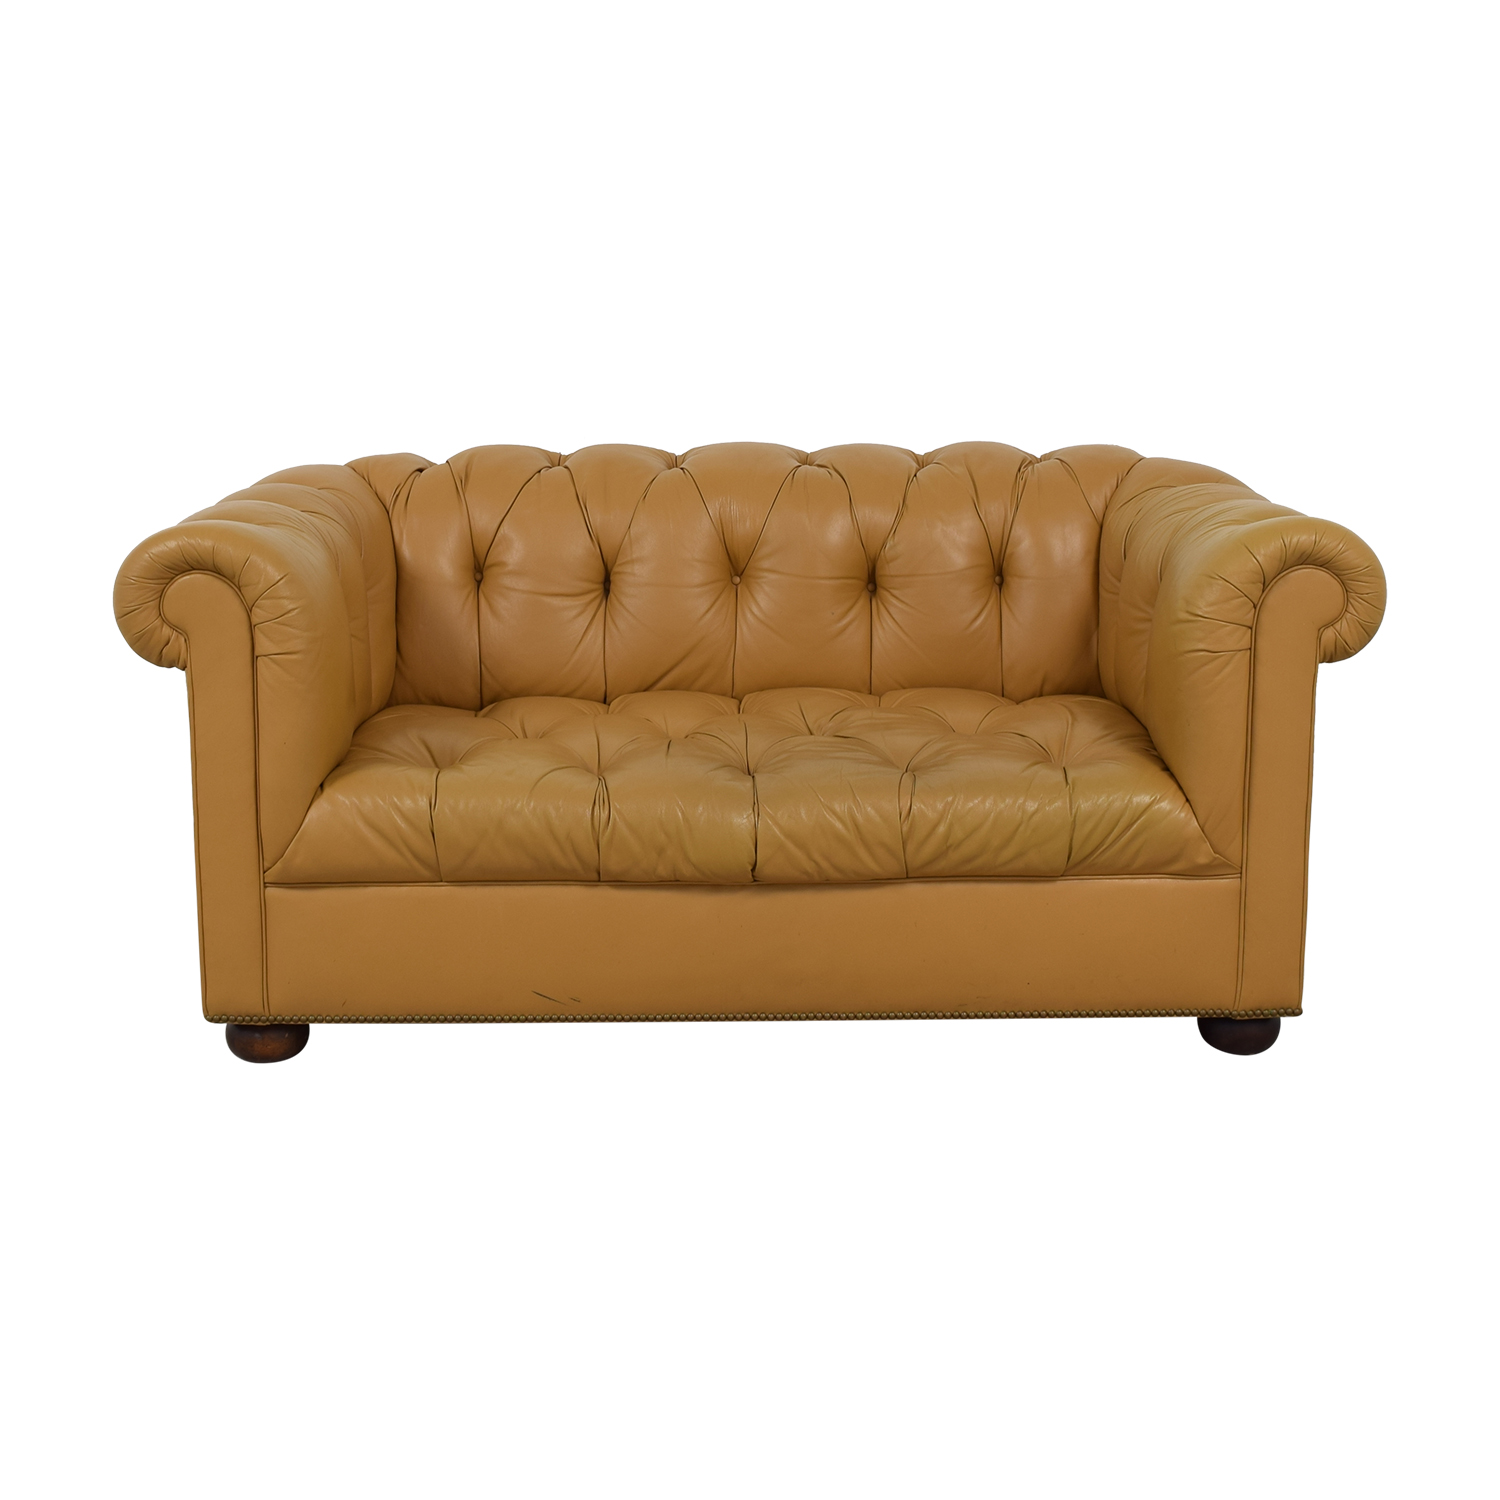 buy Tan Tufted Single-Cushion Couch  Sofas